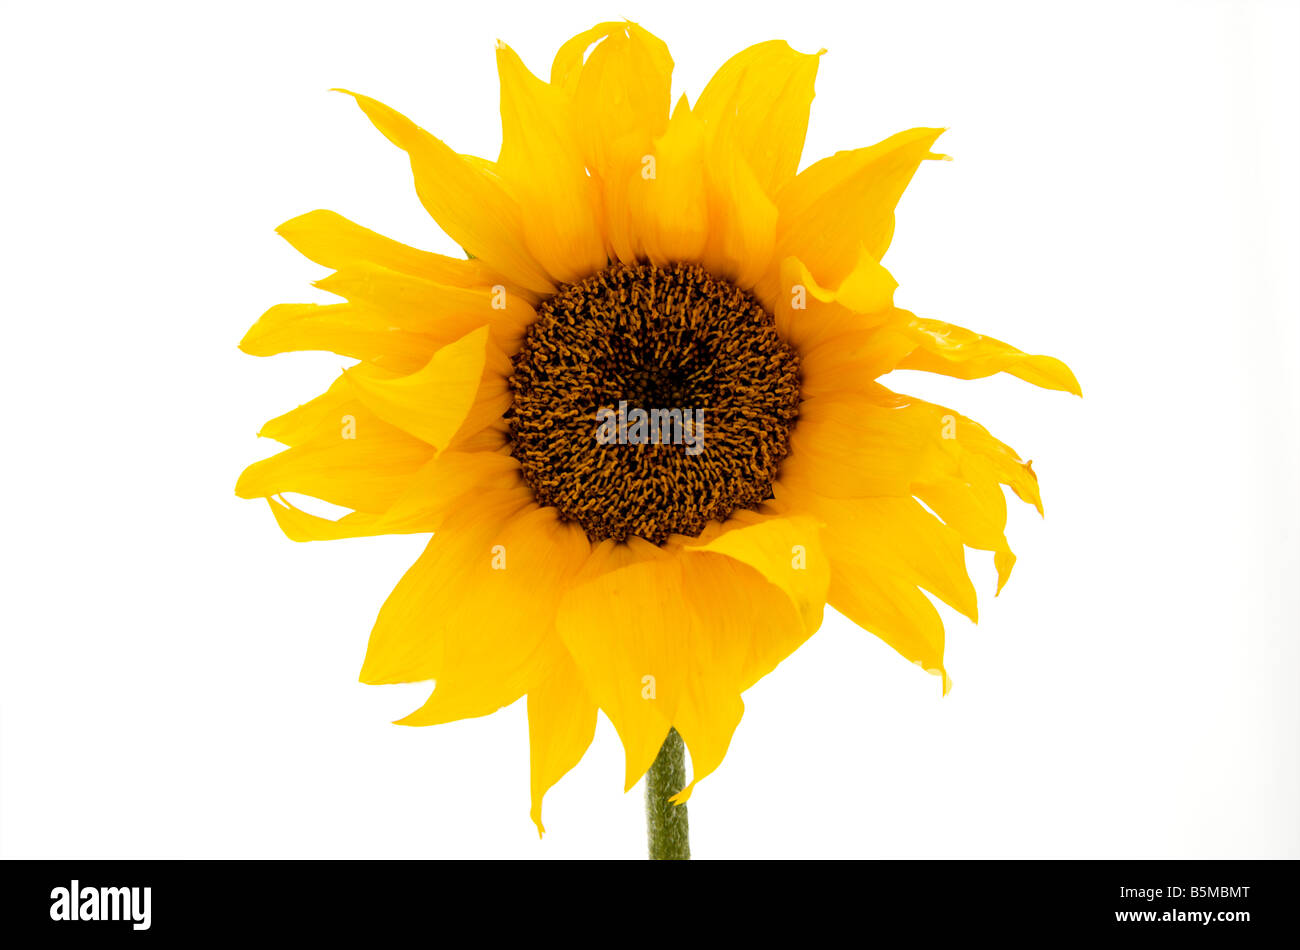 sunflower plants head against a white background - Stock Image